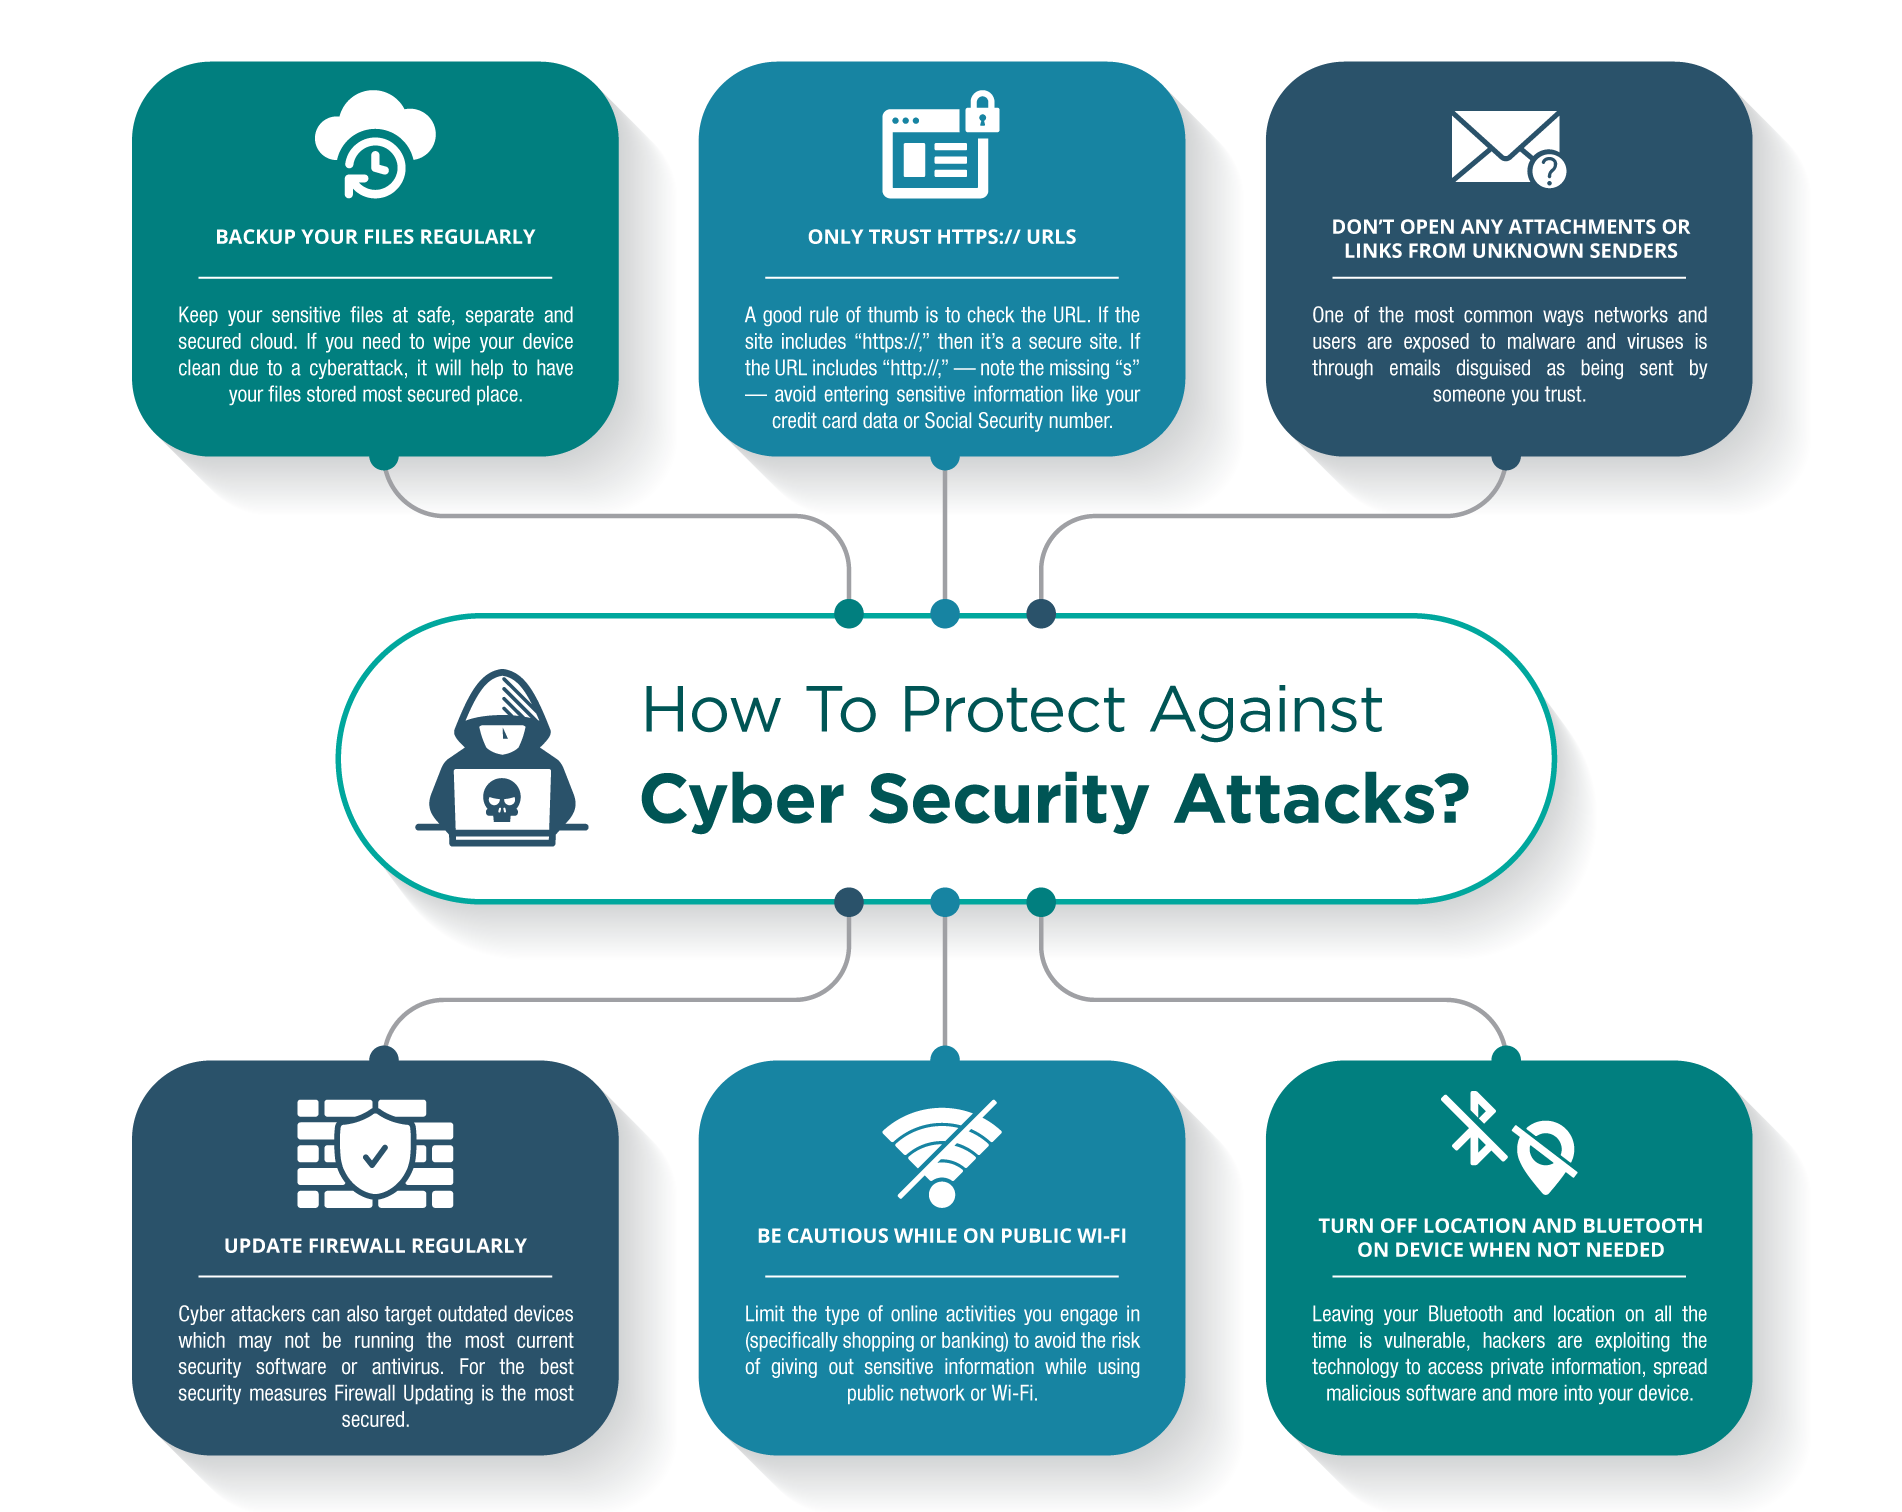 How To Protect Against Cyber Security Attacks?